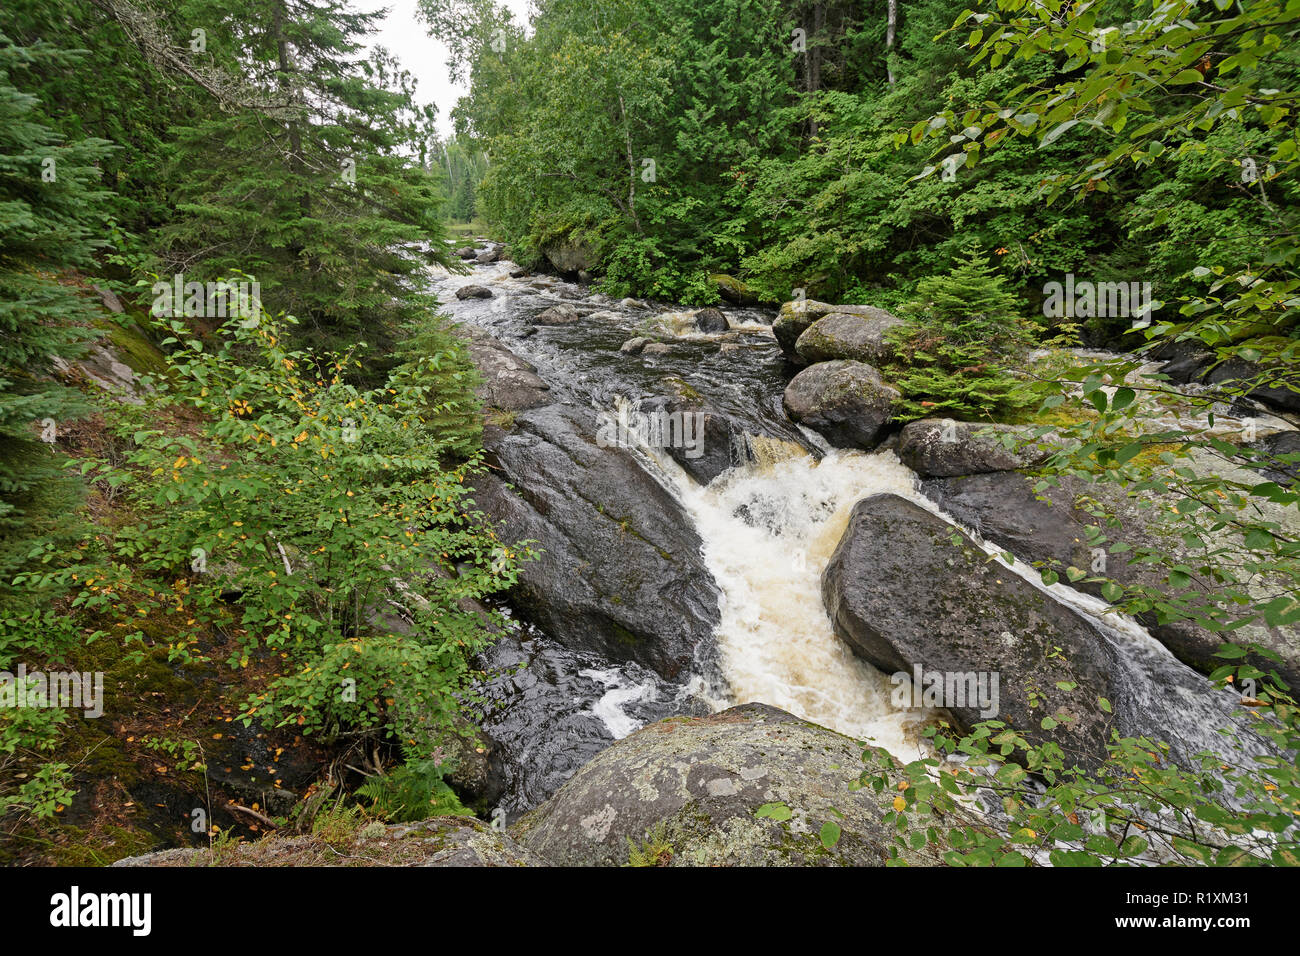 Roaring Waters in the Pines of the Boundary Waters in Minnesota - Stock Image